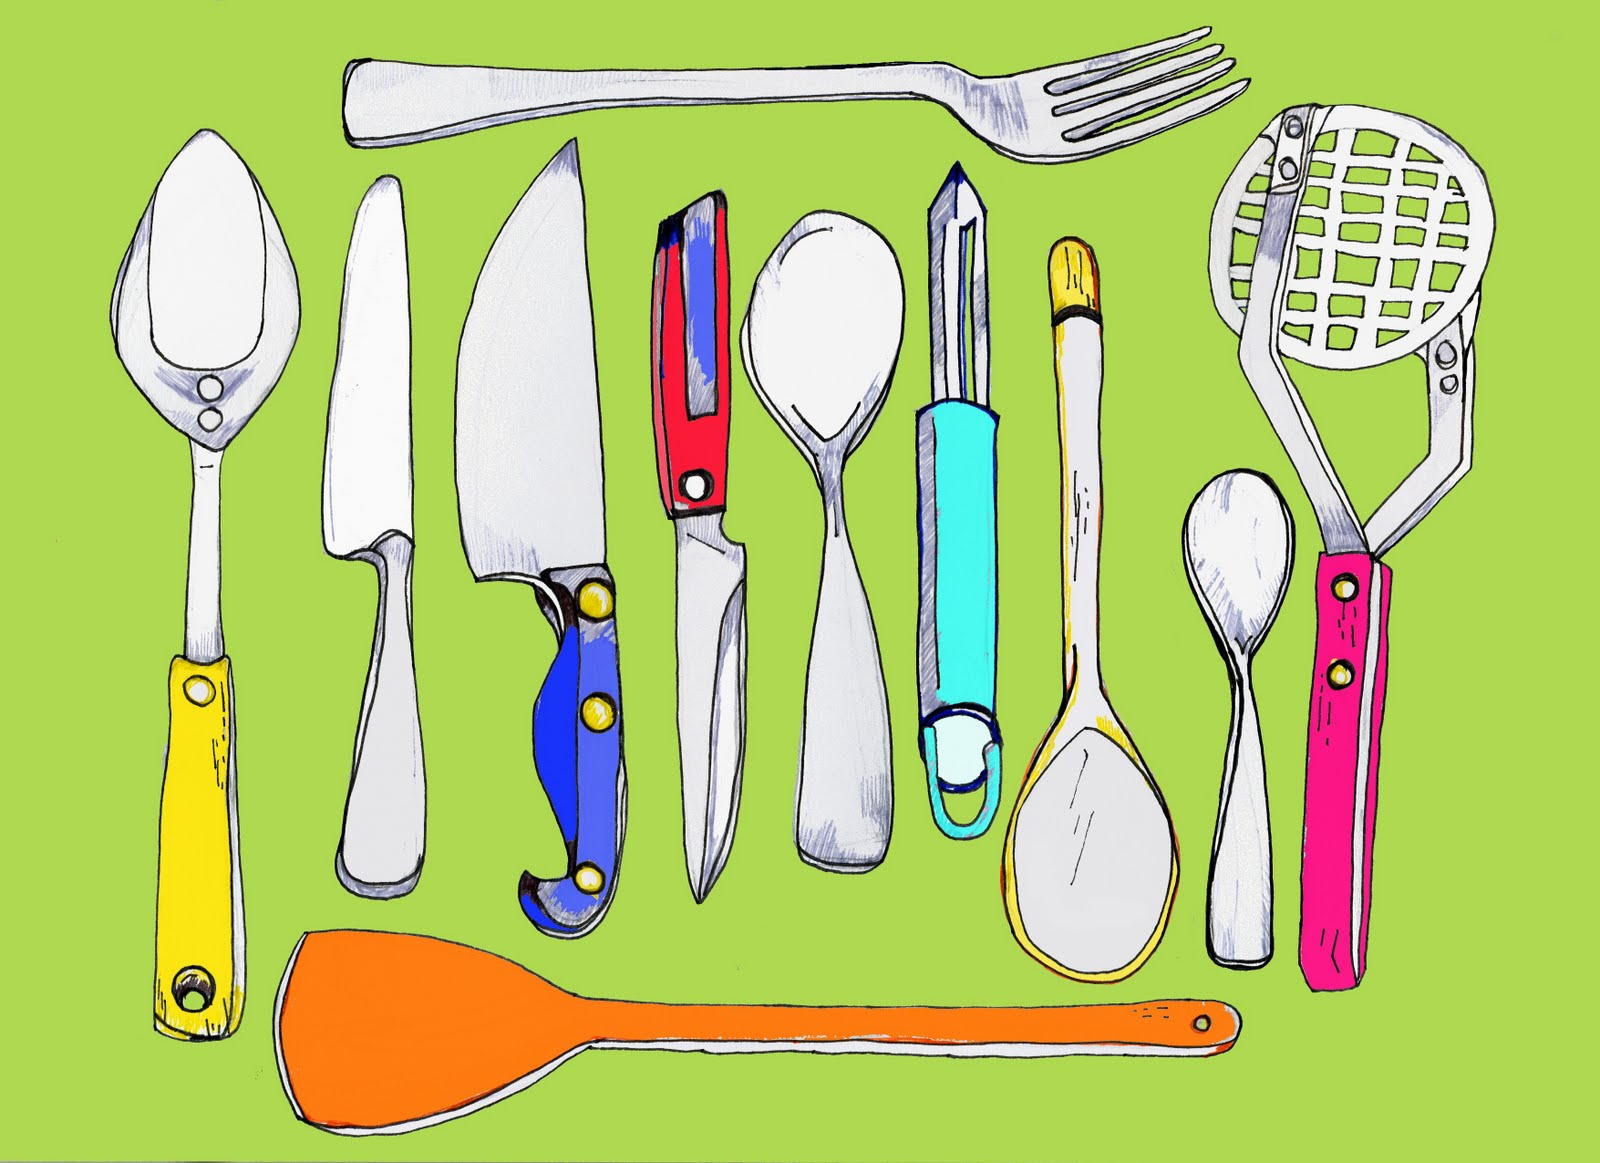 Home Utensils Sketch : Drawing Pictures Of The Kitchen - Home Renovation Ideas